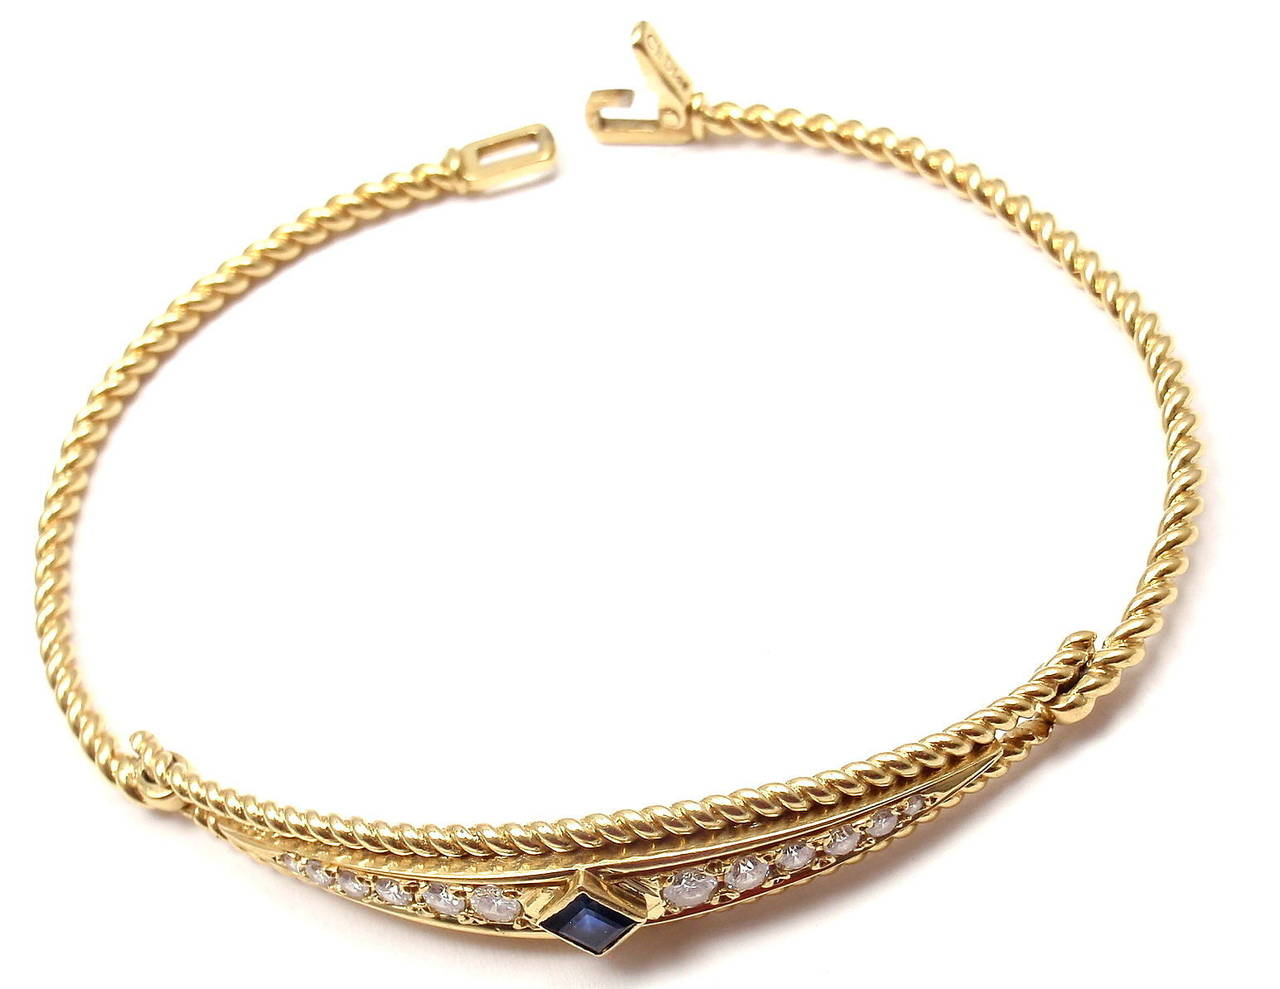 Christian Dior Sapphire Diamond Yellow Gold Bangle Bracelet 6